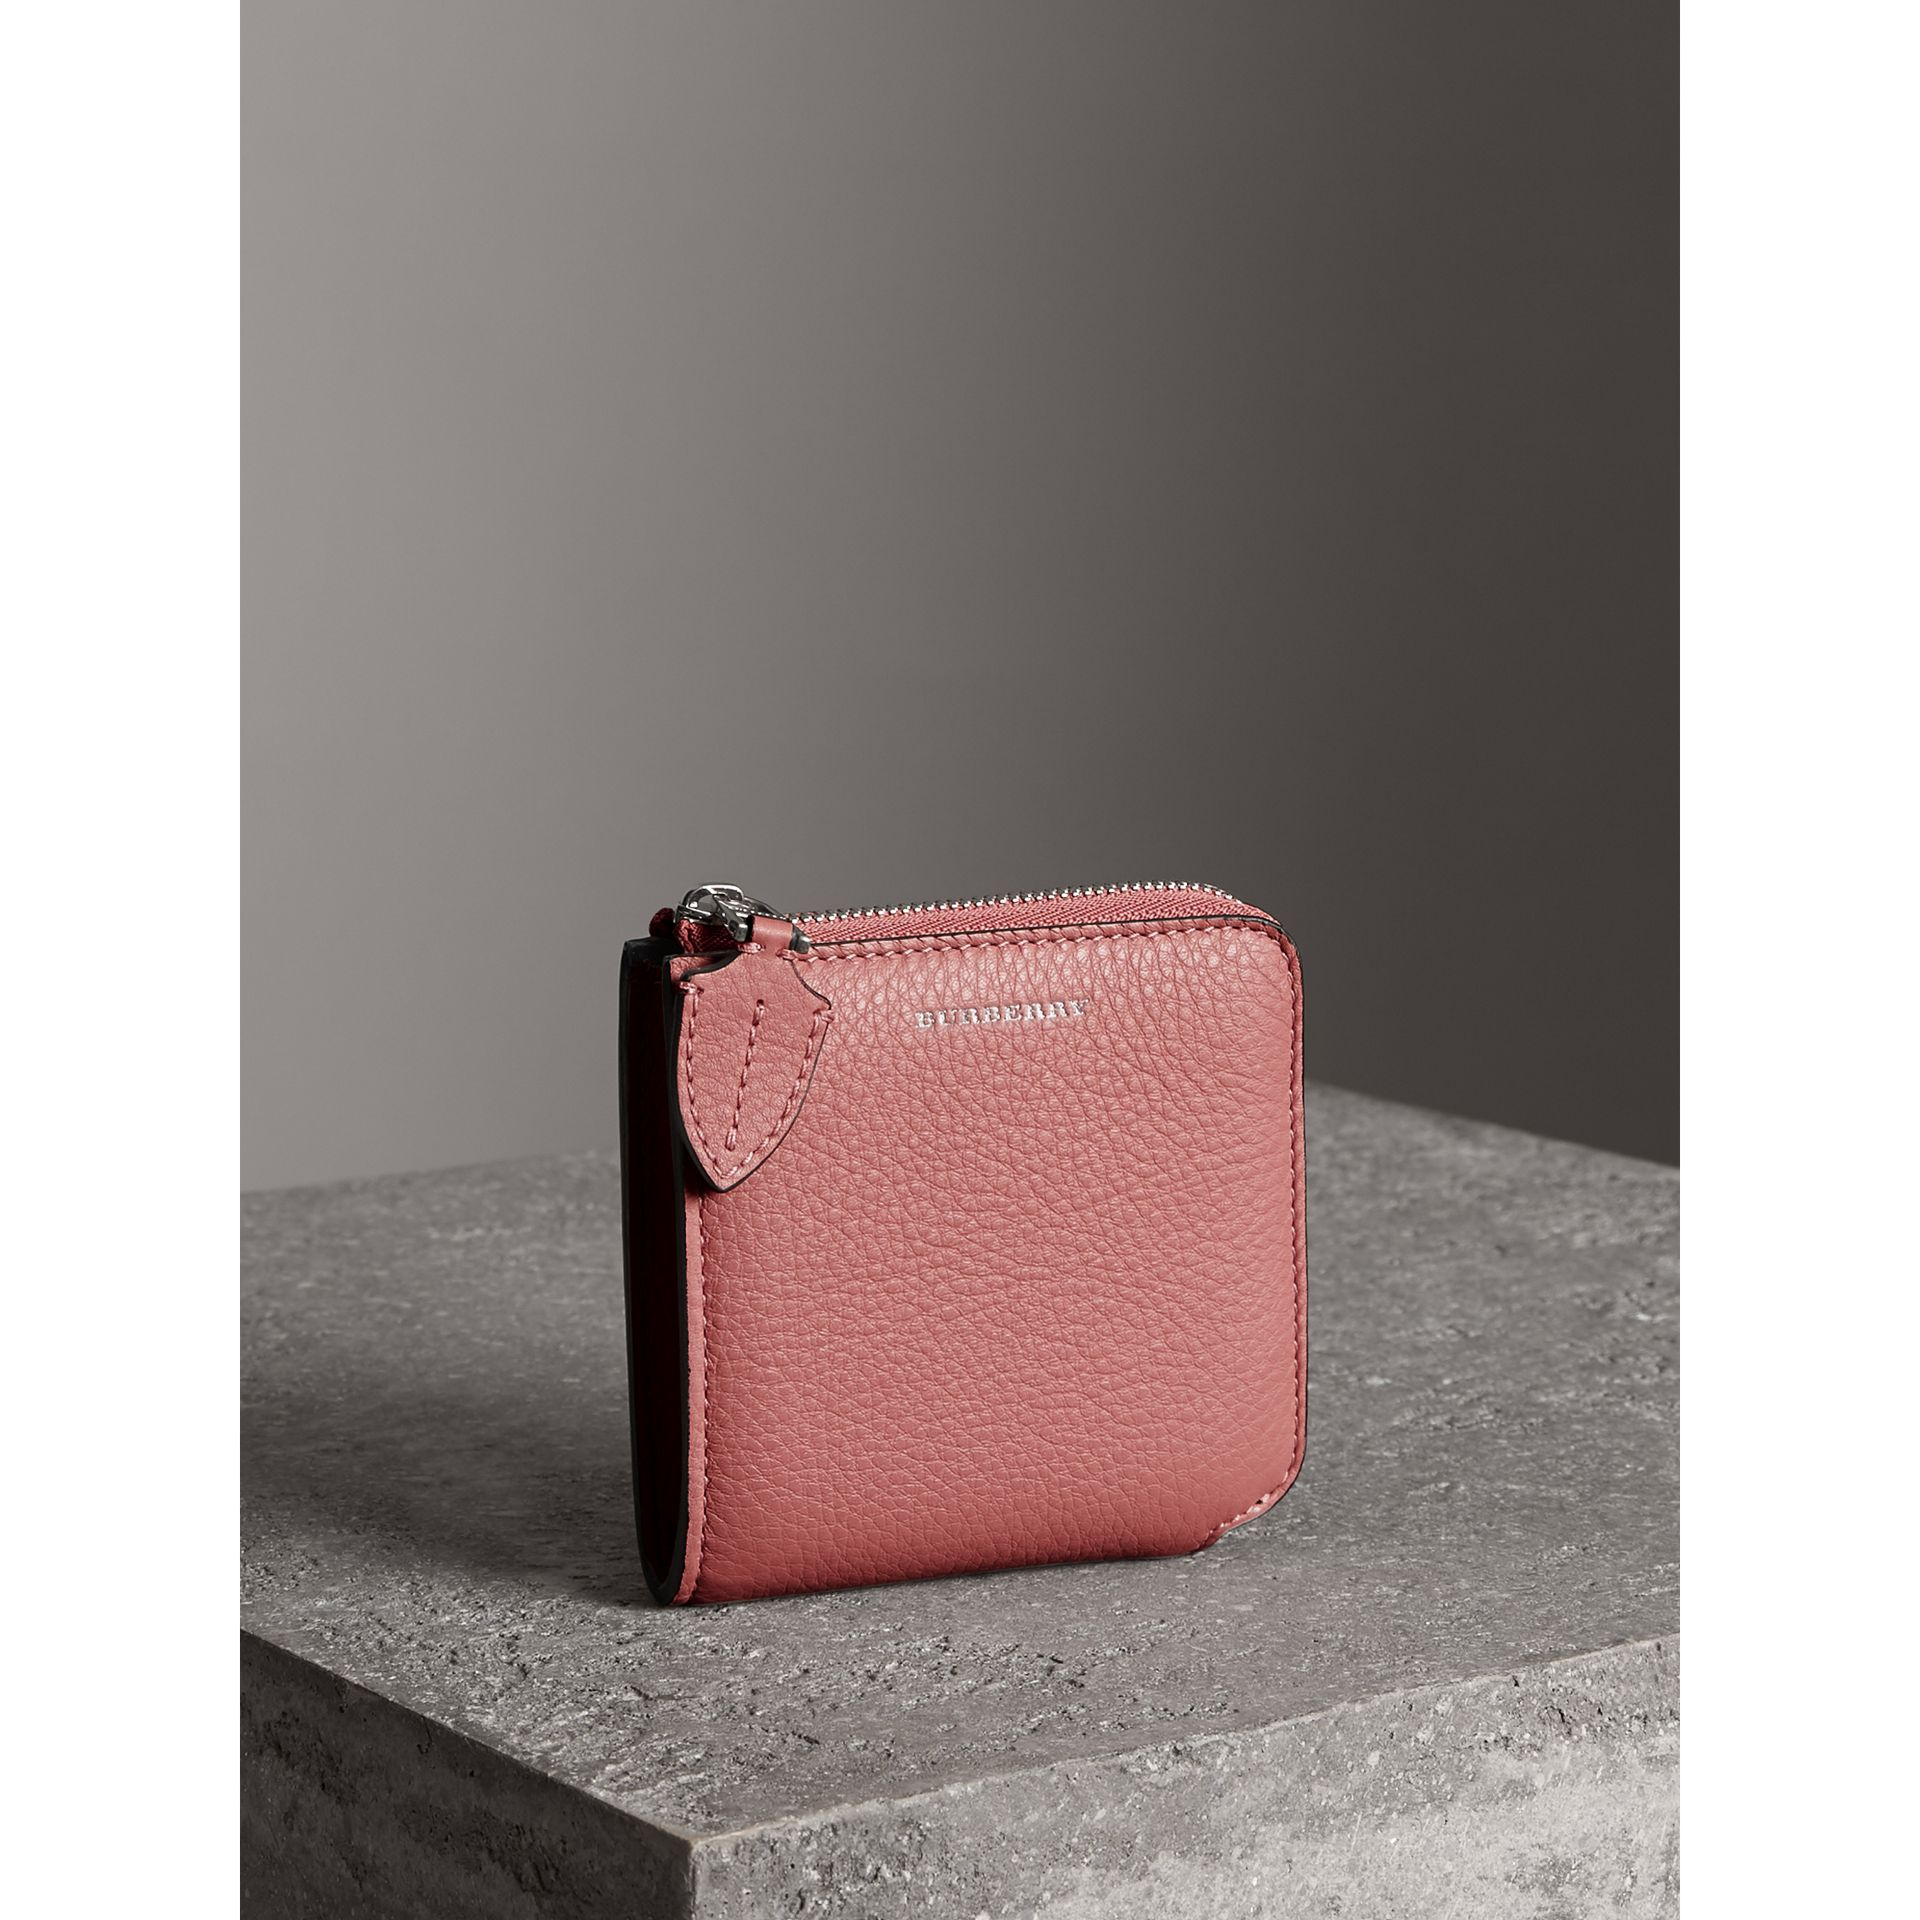 Grainy Leather Square Ziparound Wallet in Dusty Rose - Women | Burberry - gallery image 4